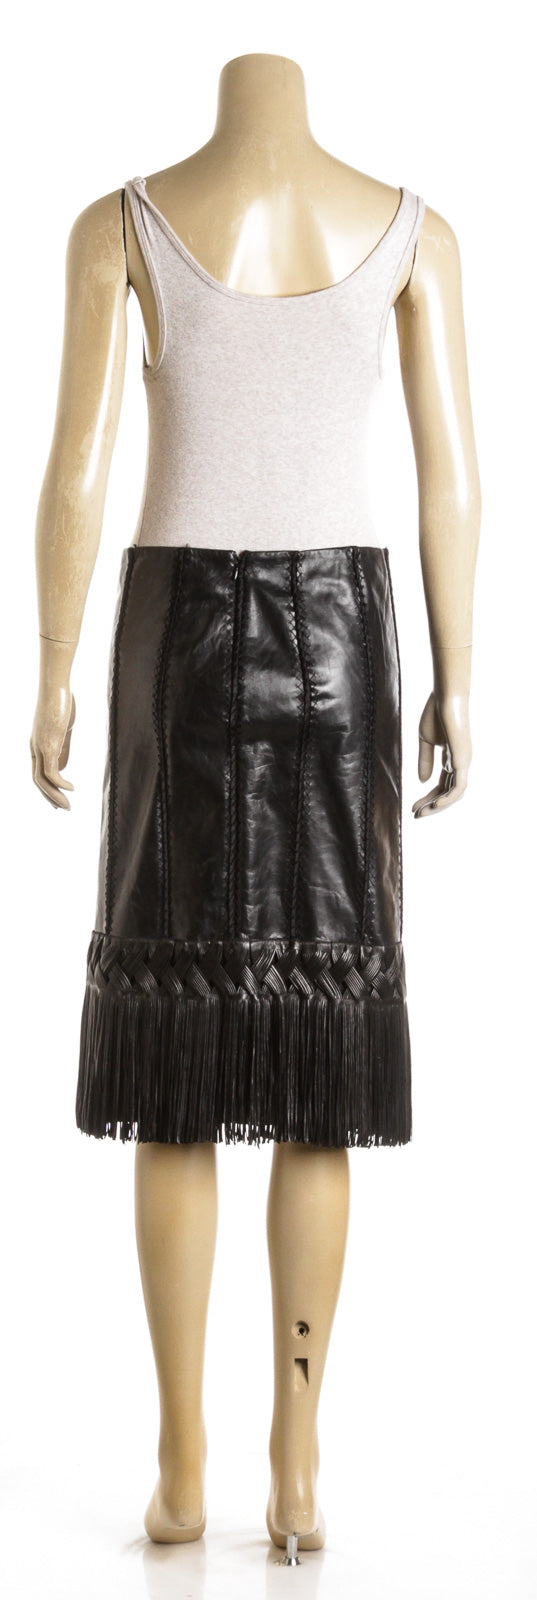 J Mendel Black Leather Fringe Skirt (Size 4)